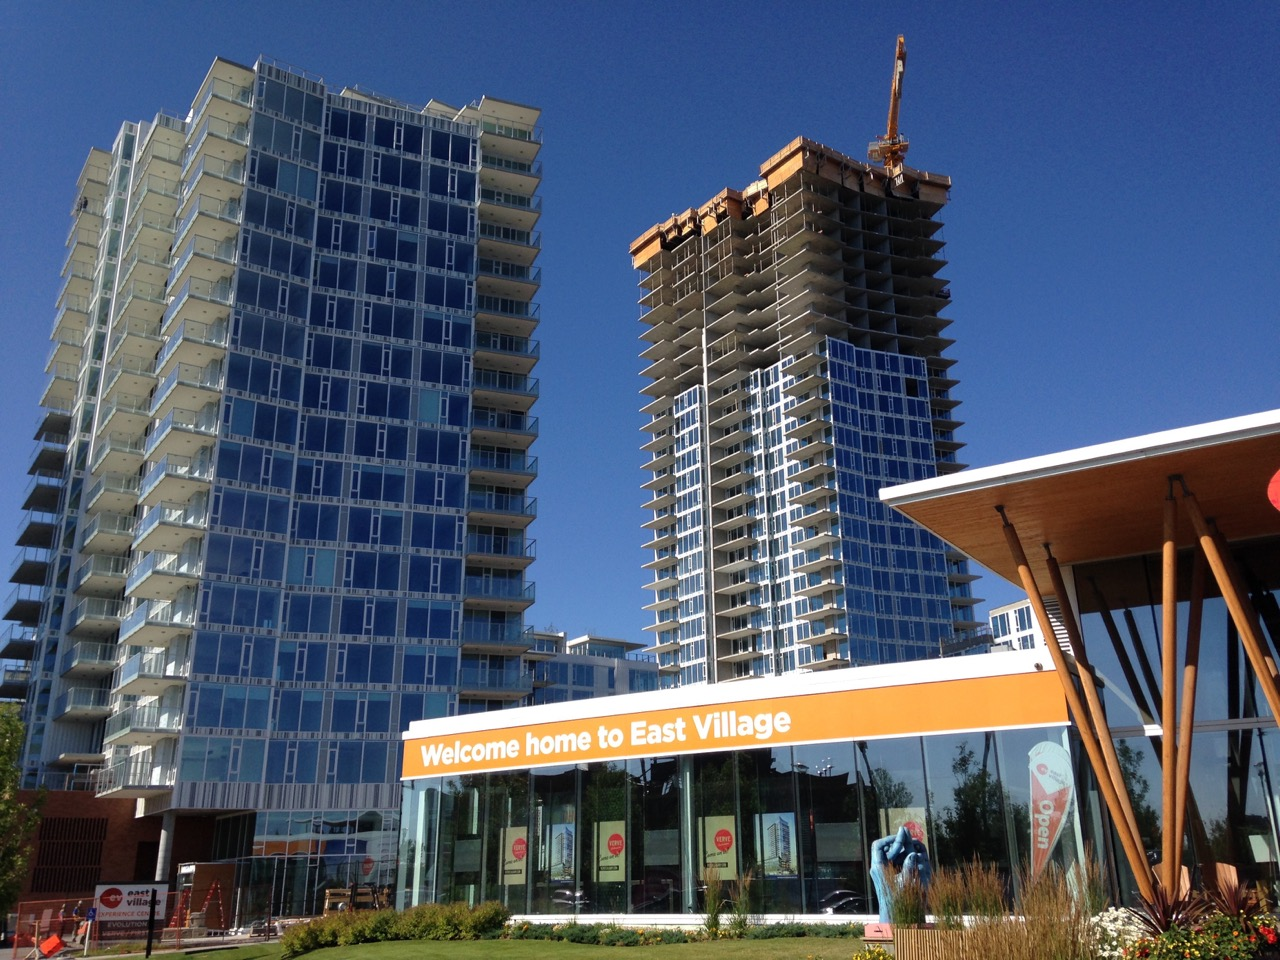 East Village sales pavilion, with new condos in the background.